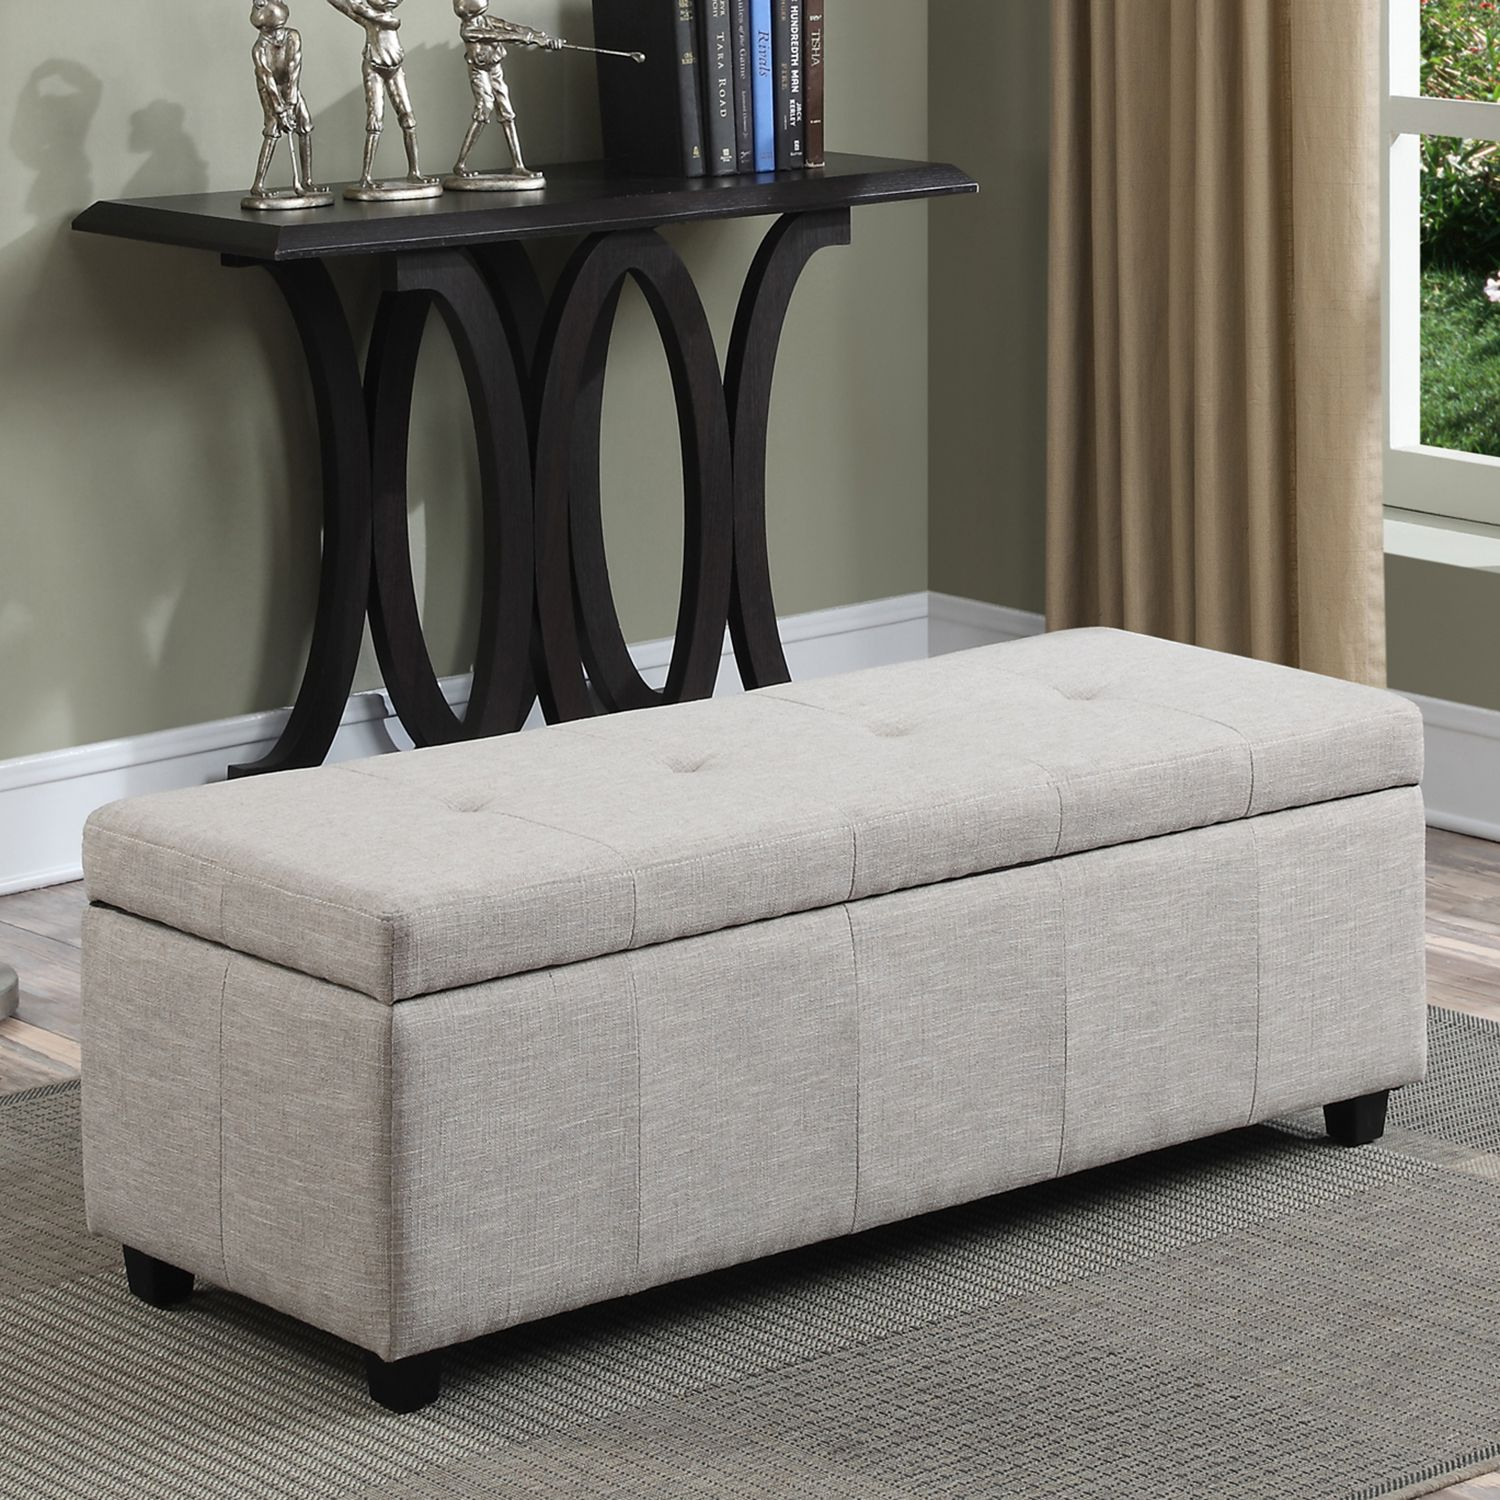 Home Castleford Large Rectangular Storage Ottoman Bench